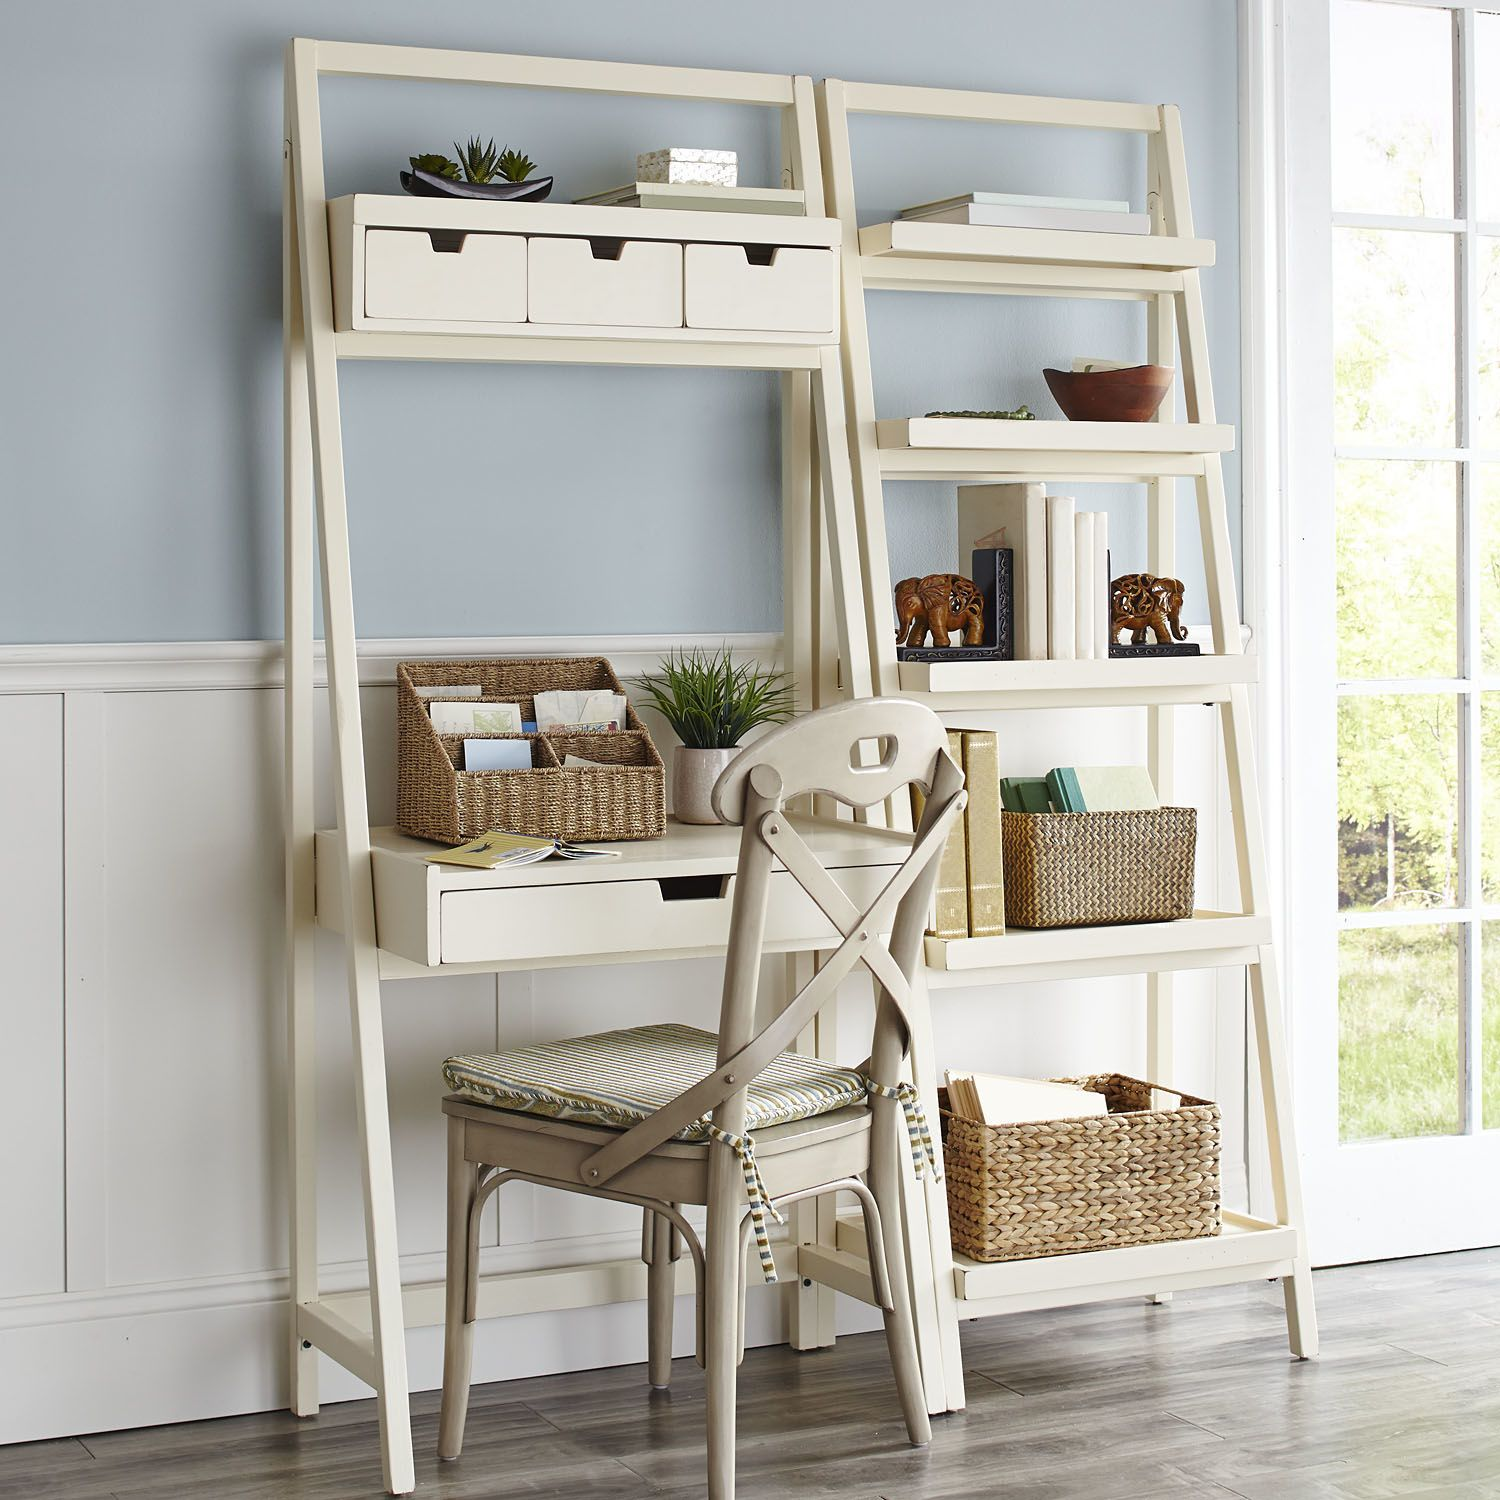 Pier 1 Imports 349 Ladder Shelf